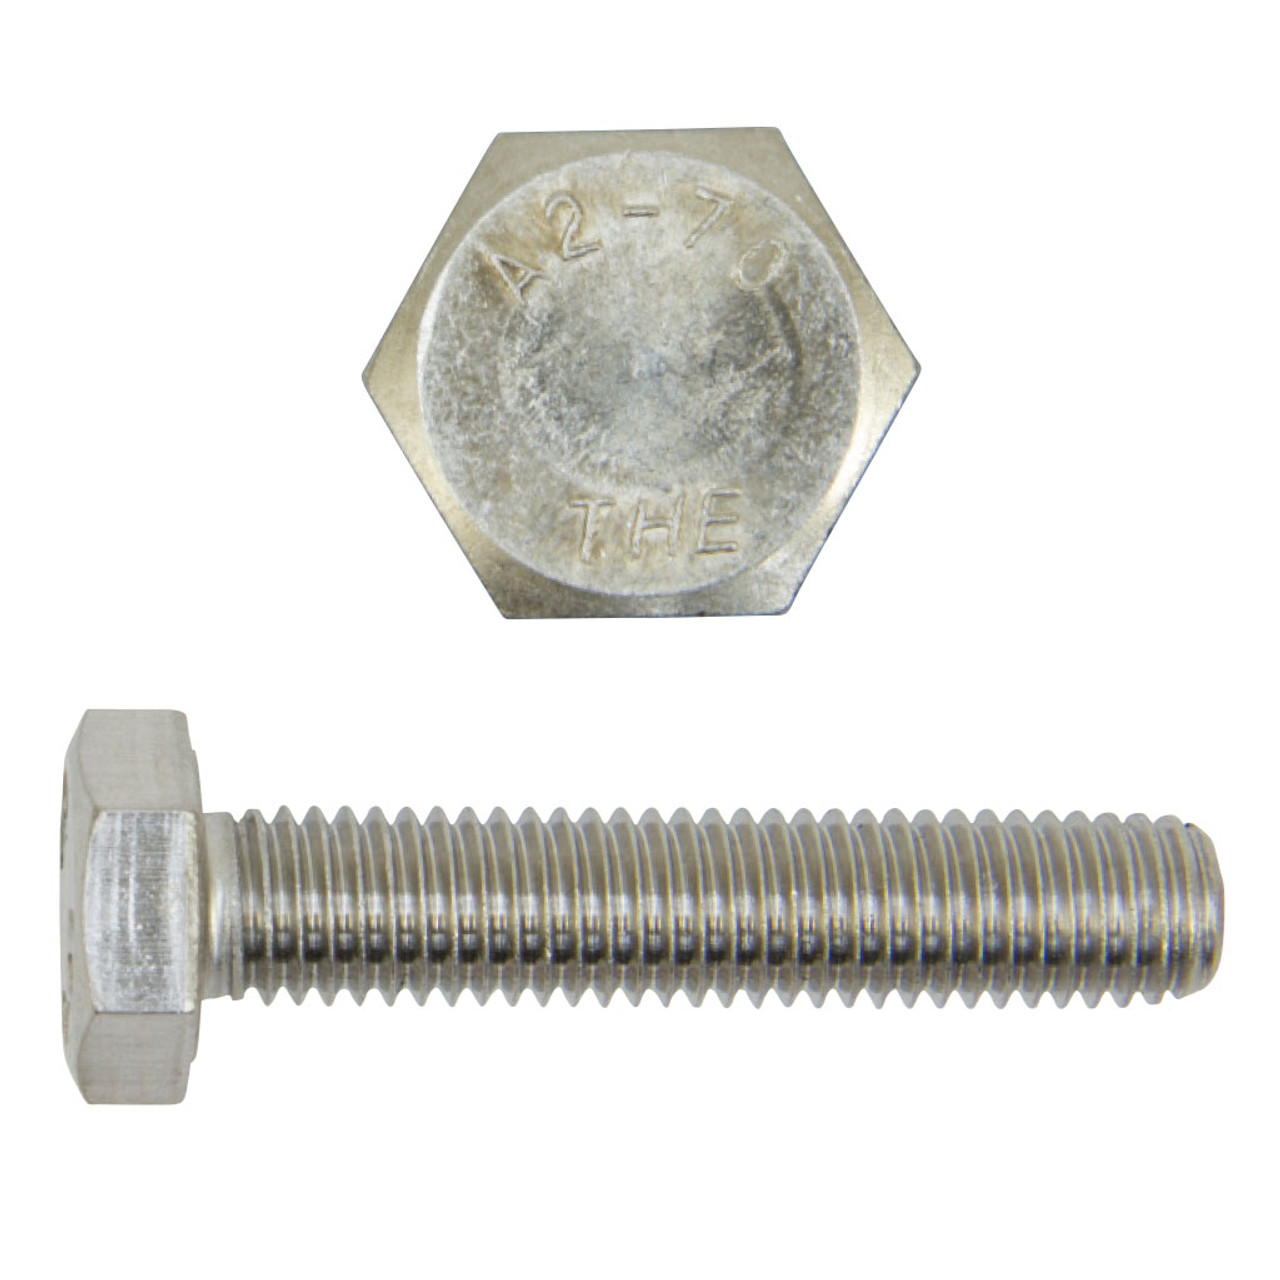 M16-2 X 40 Hex Head Cap Screw Full Thread A2 Stainless Steel Package Qty 100